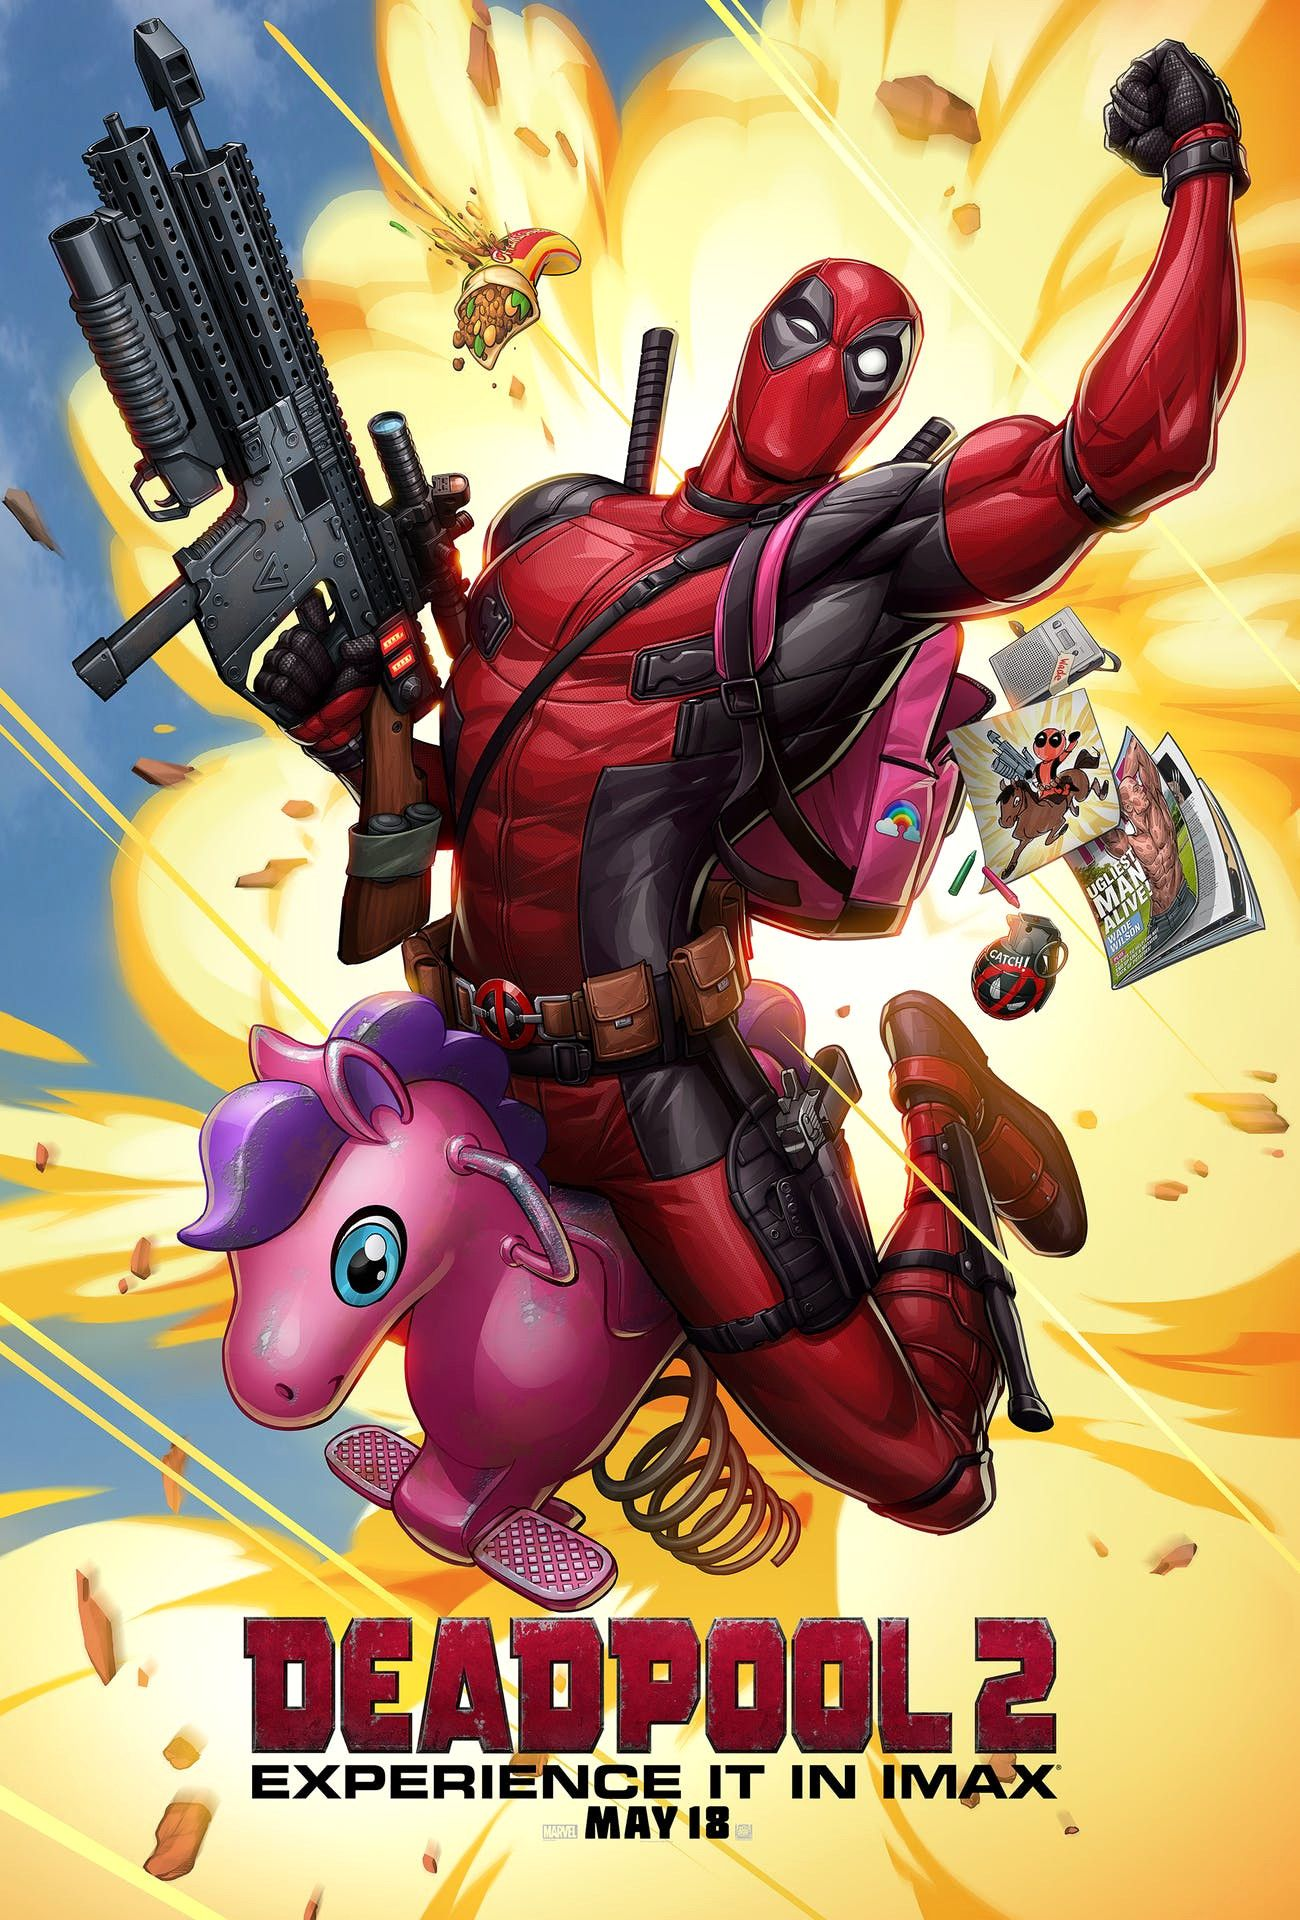 Best Of Deadpool 2 Unofficial Movie Posters Look Incredible Deadpool 2 Poster Superhero Movies Best Of Deadpool